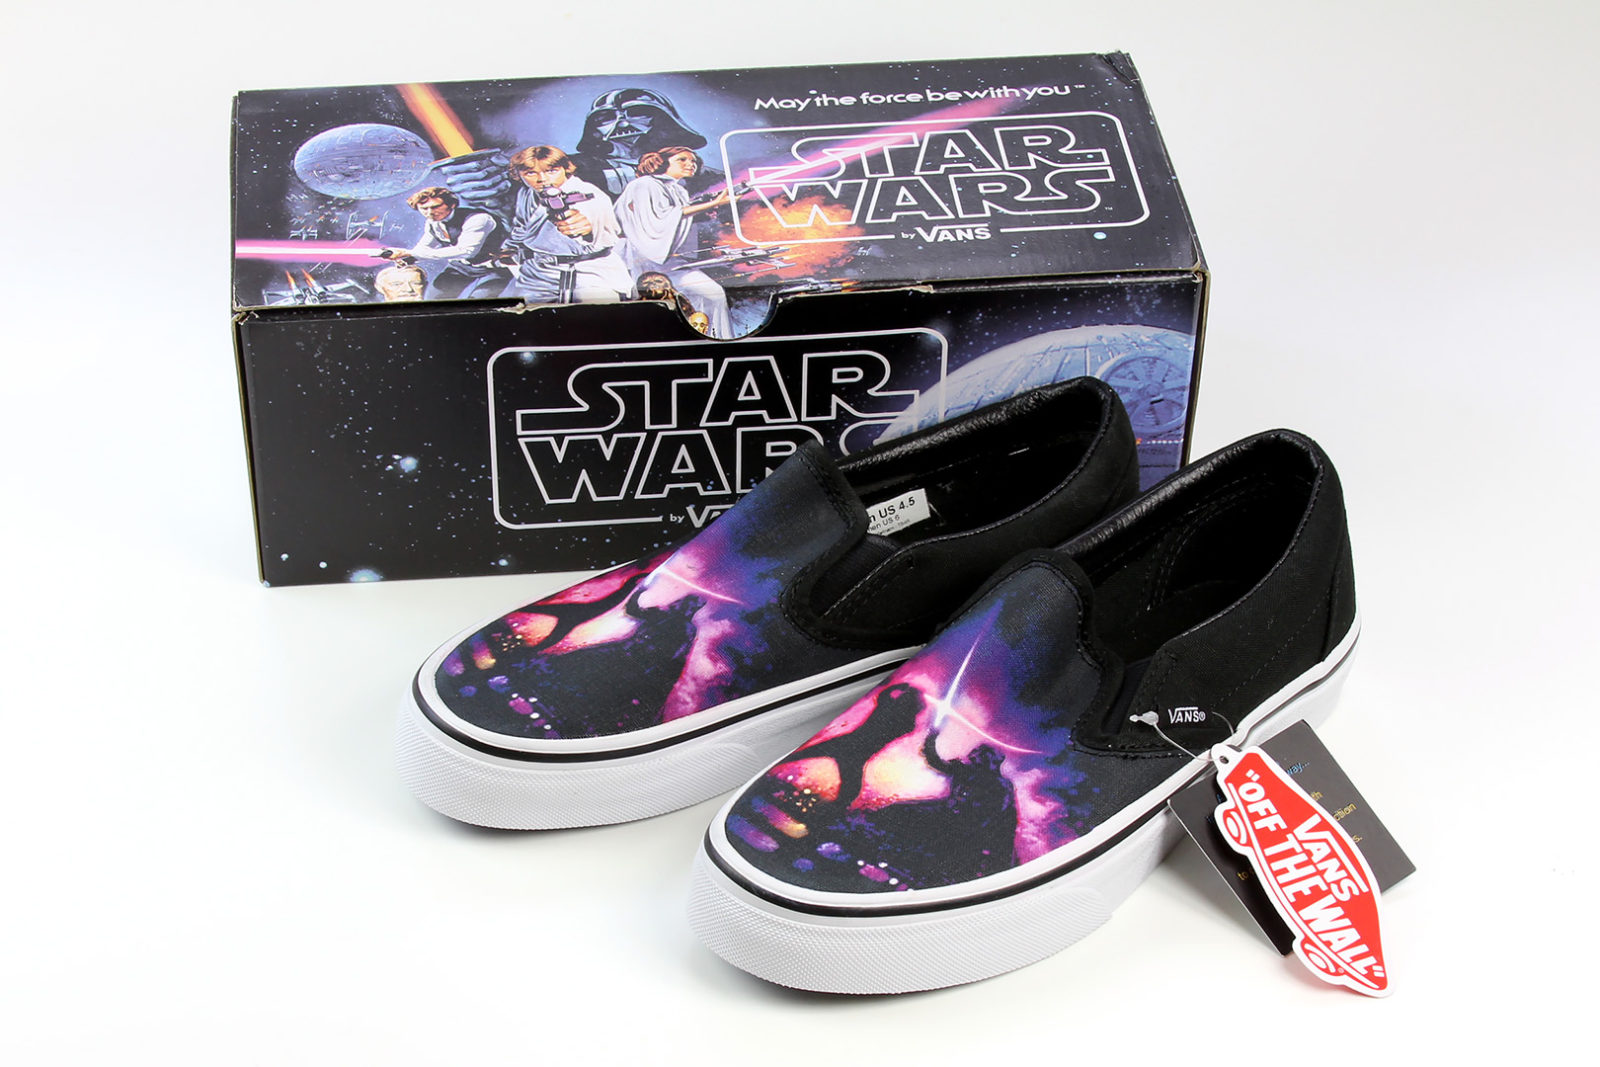 Review – Vans x Star Wars shoes